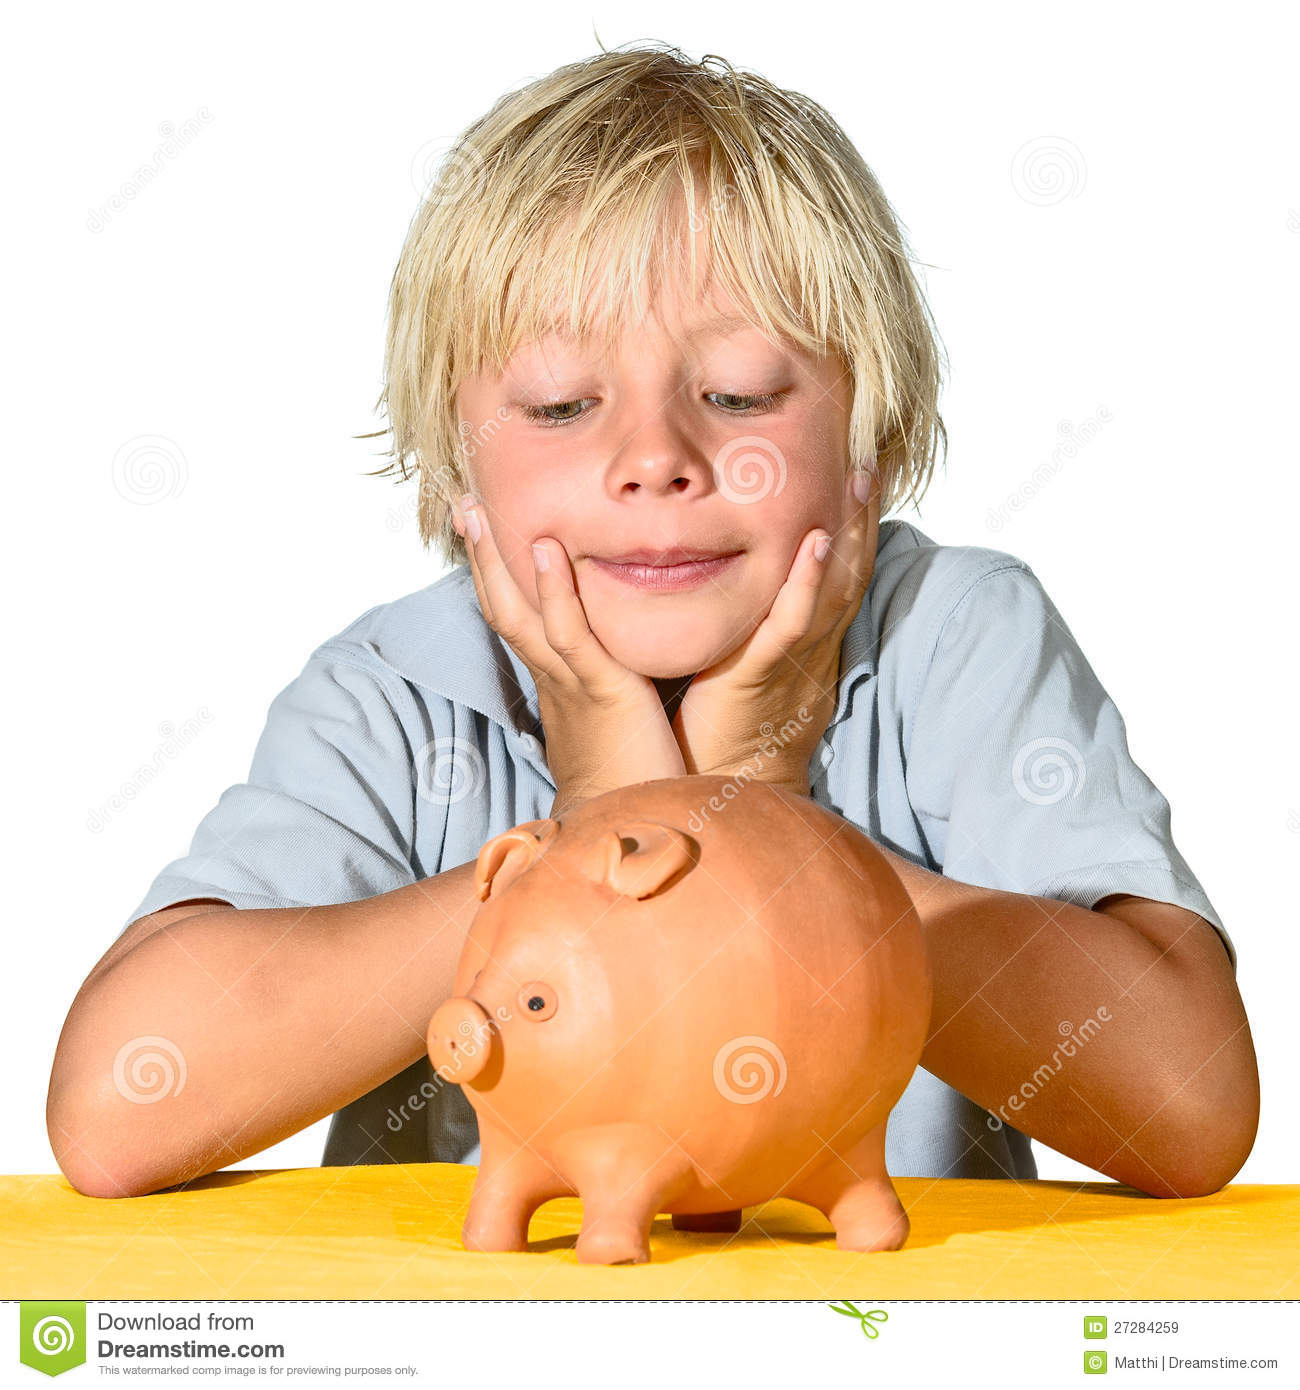 Piggy Banks For Little Boys Blonde Boy With Piggy Bank Royalty Free Stock Images